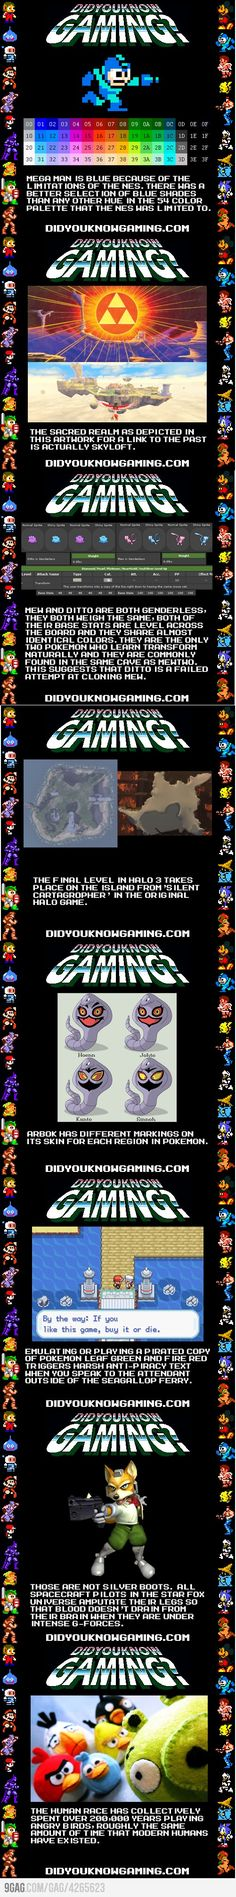 Interesting Video Game Facts